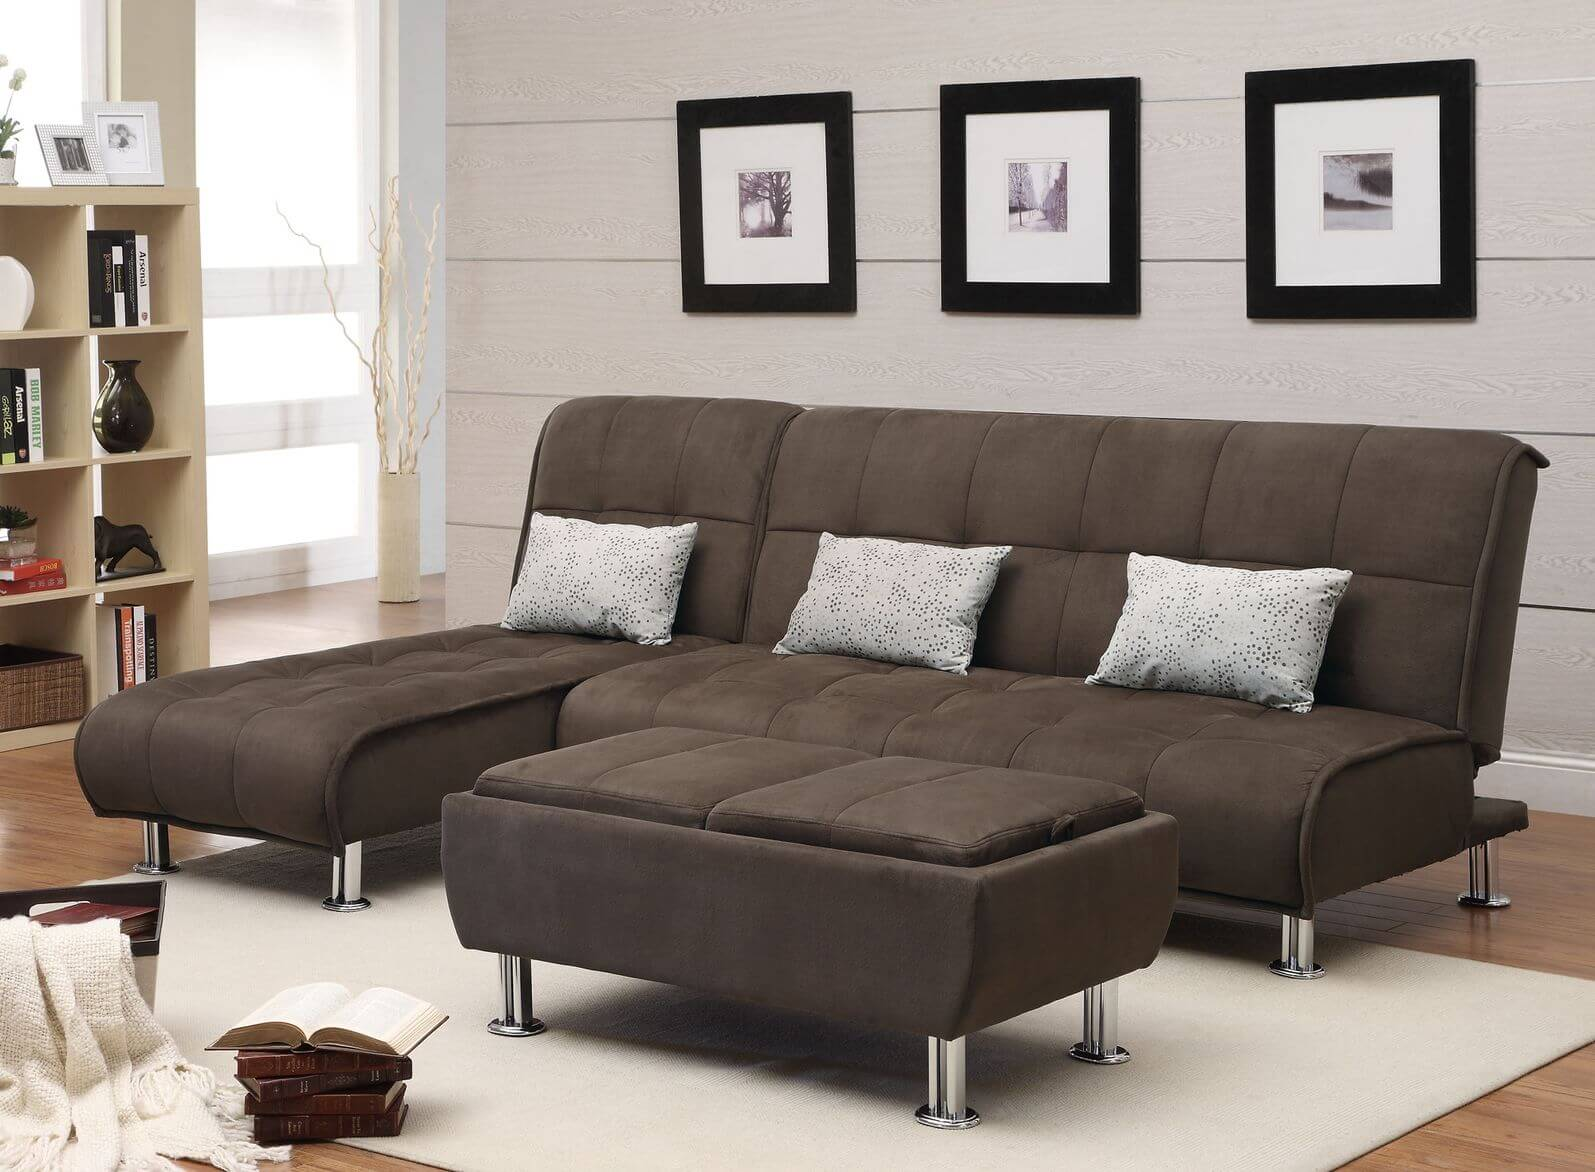 chocolate brown leather sectional sofa with 2 storage ottomans cover for 50 beautiful living rooms ottoman coffee tables ottomanlight natural tones in this room contrast chrome legged fabric couch